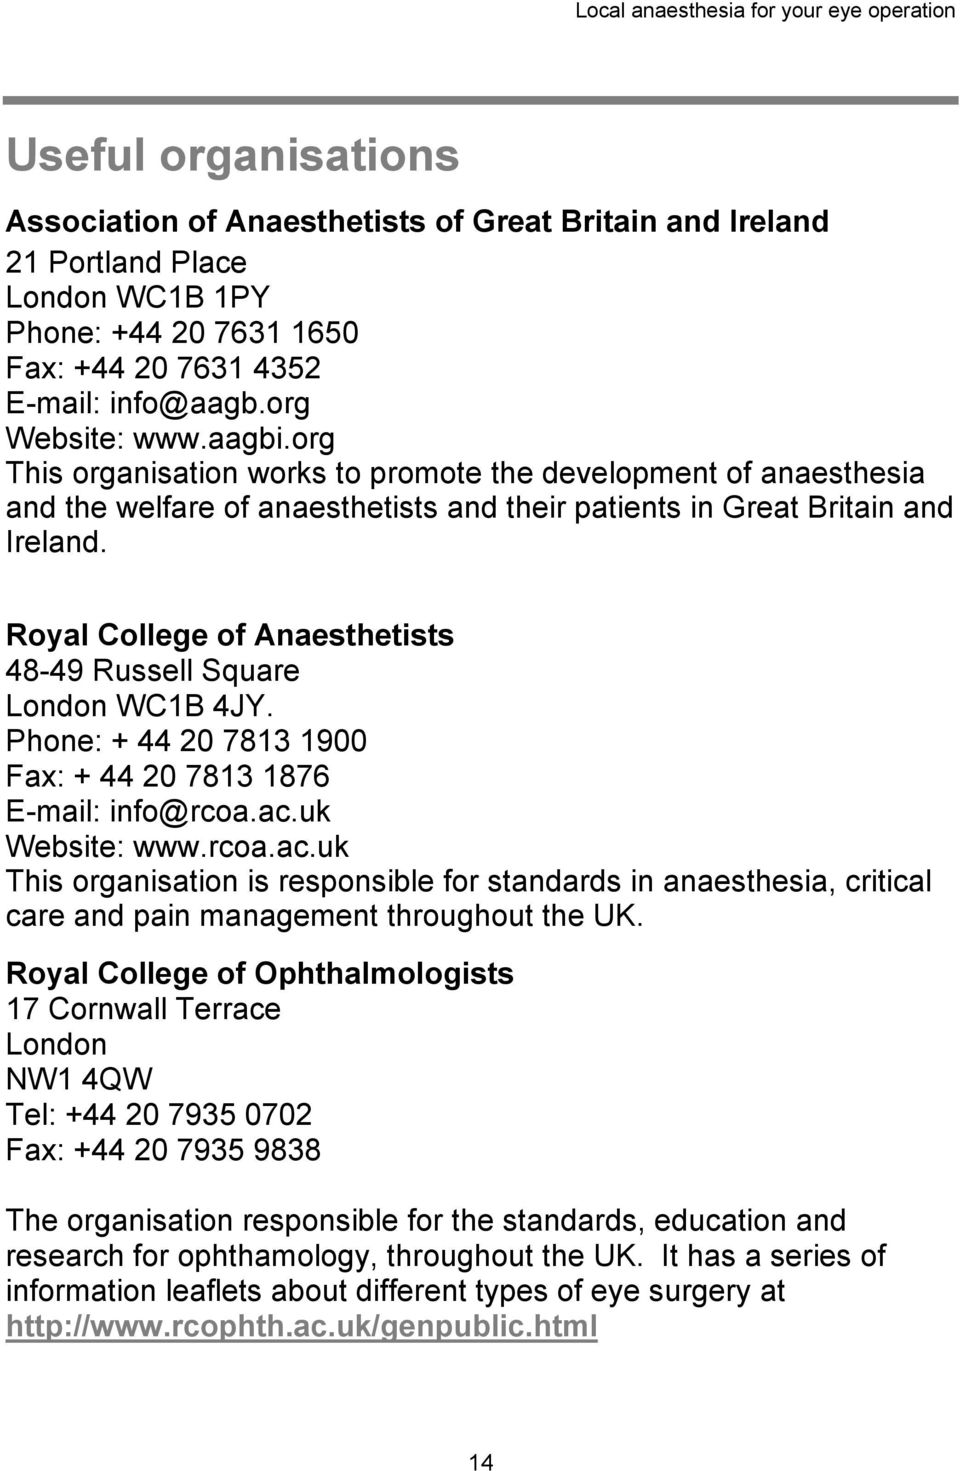 Royal College of Anaesthetists 48-49 Russell Square London WC1B 4JY. Phone: + 44 20 7813 1900 Fax: + 44 20 7813 1876 E-mail: info@rcoa.ac.